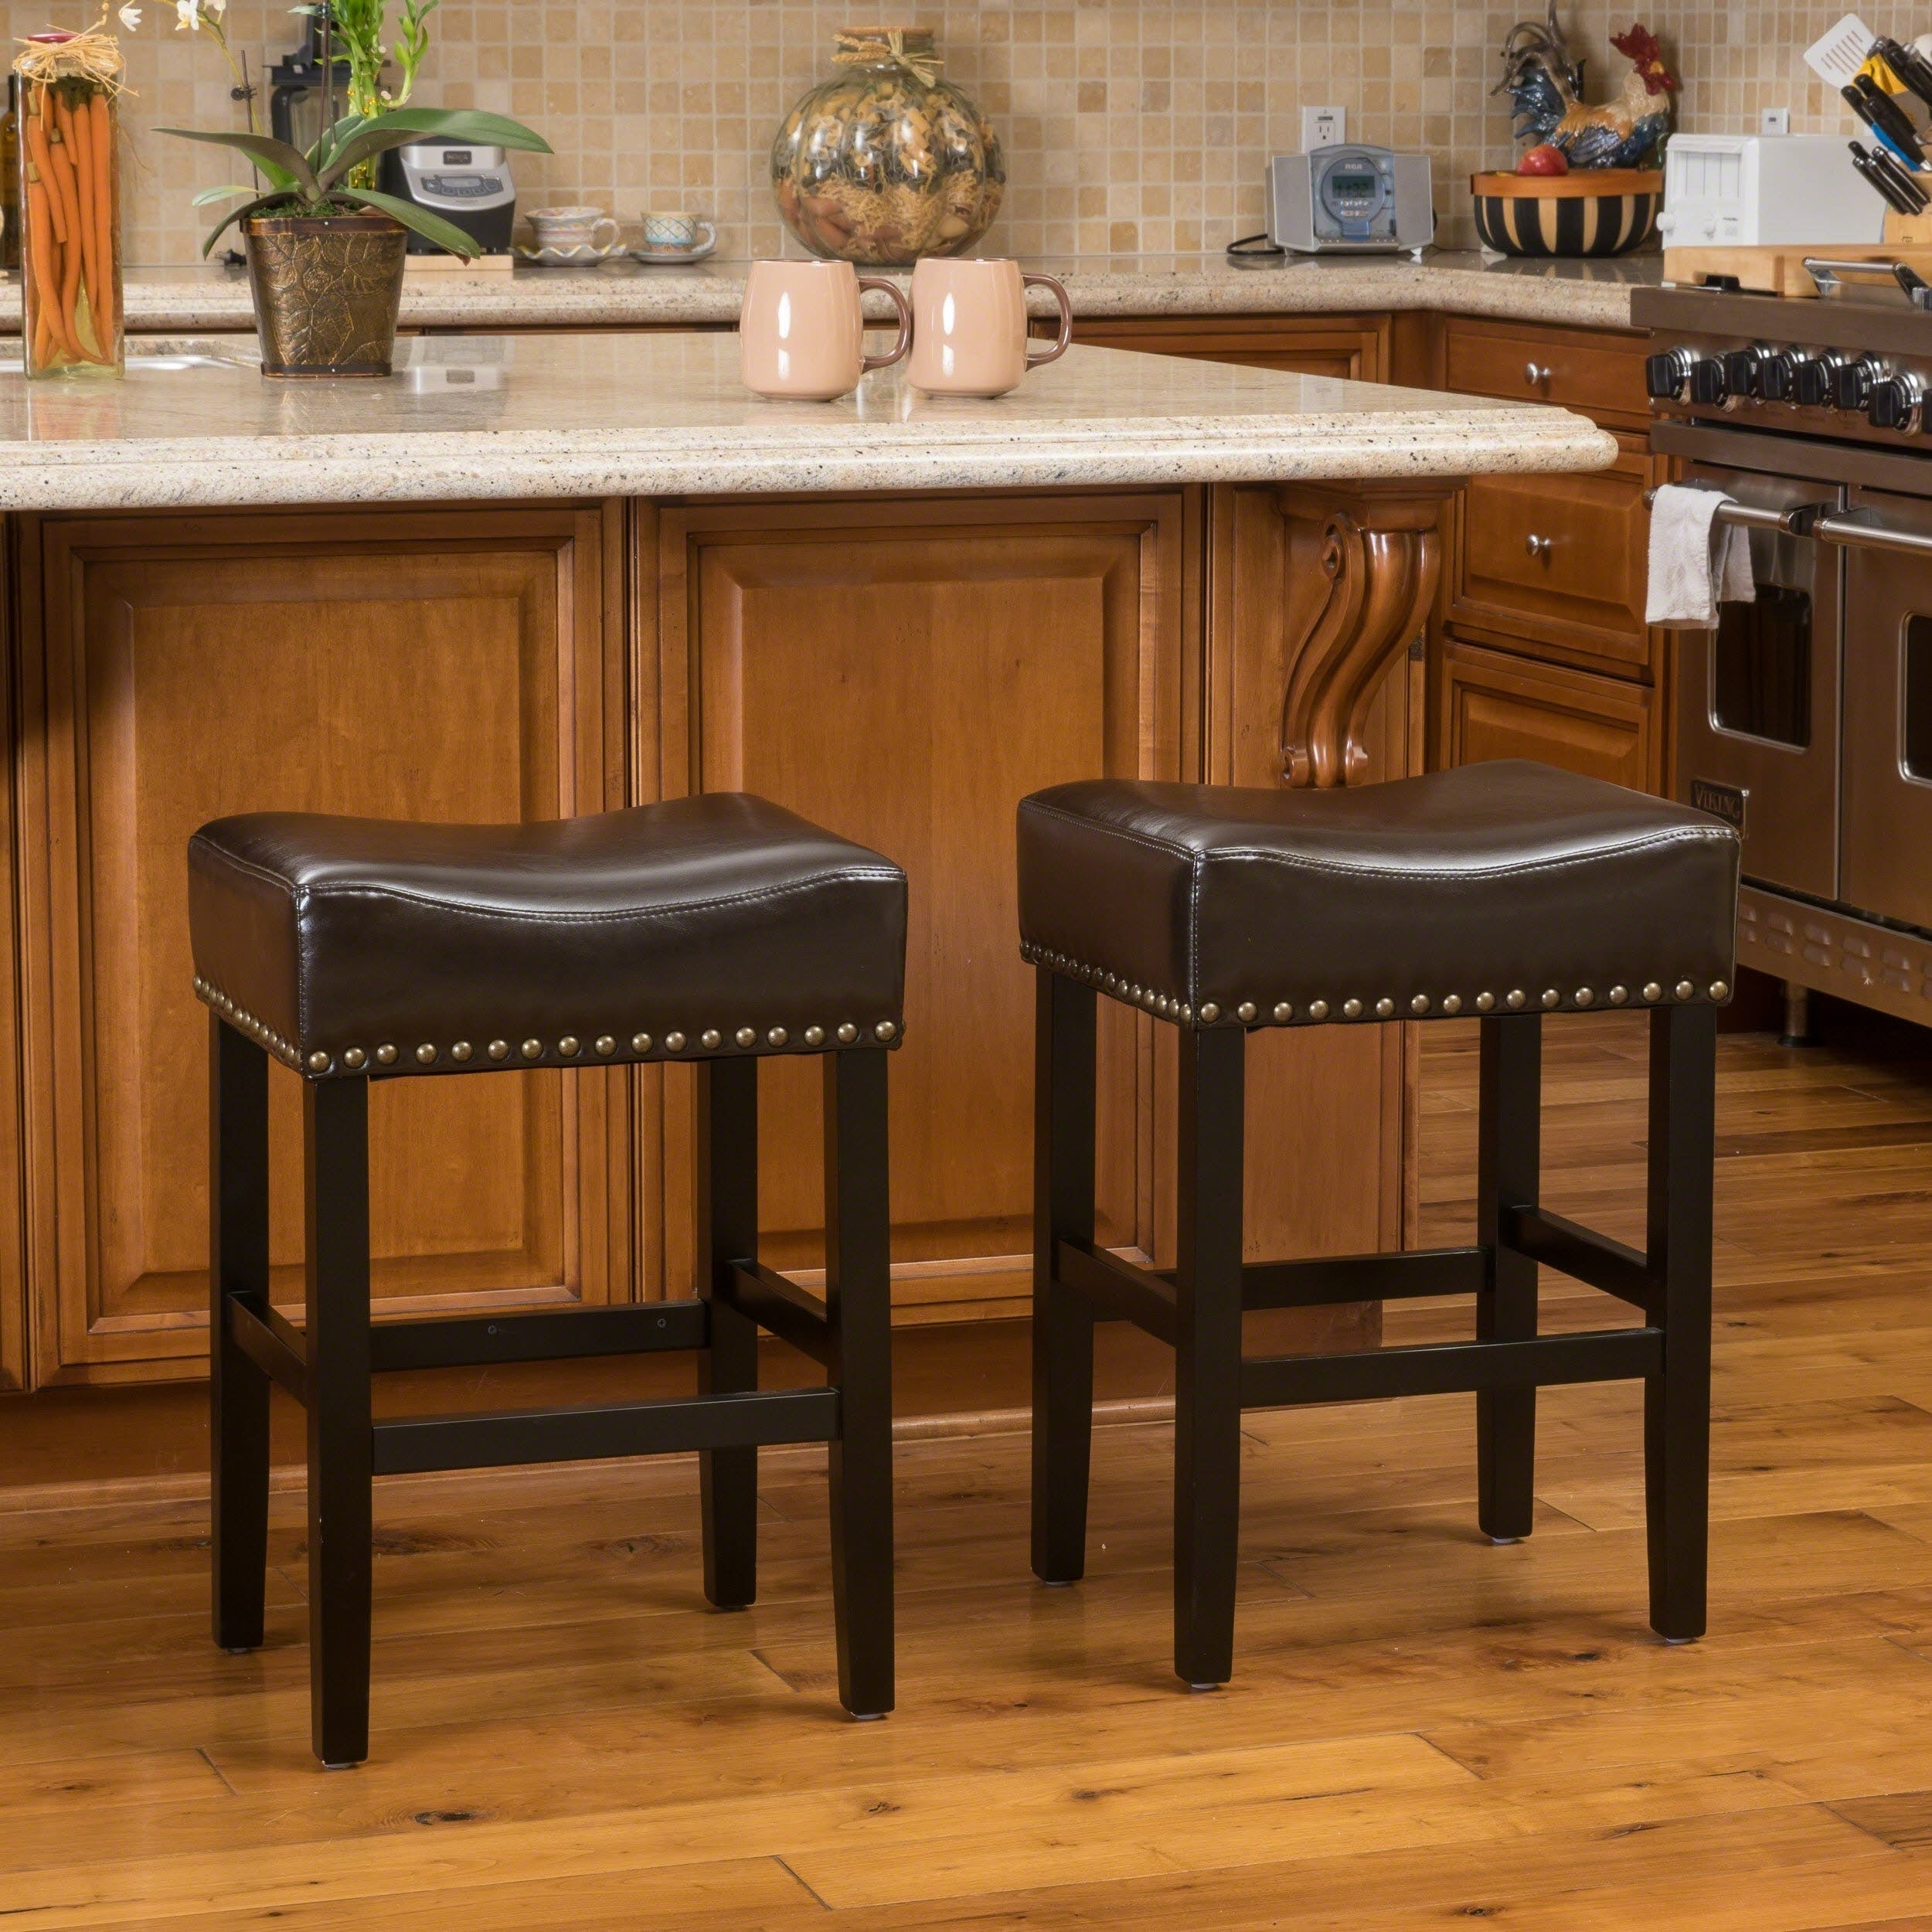 Remarkable Buy Set Of 2 Counter Bar Stools Online At Overstock Our Gmtry Best Dining Table And Chair Ideas Images Gmtryco